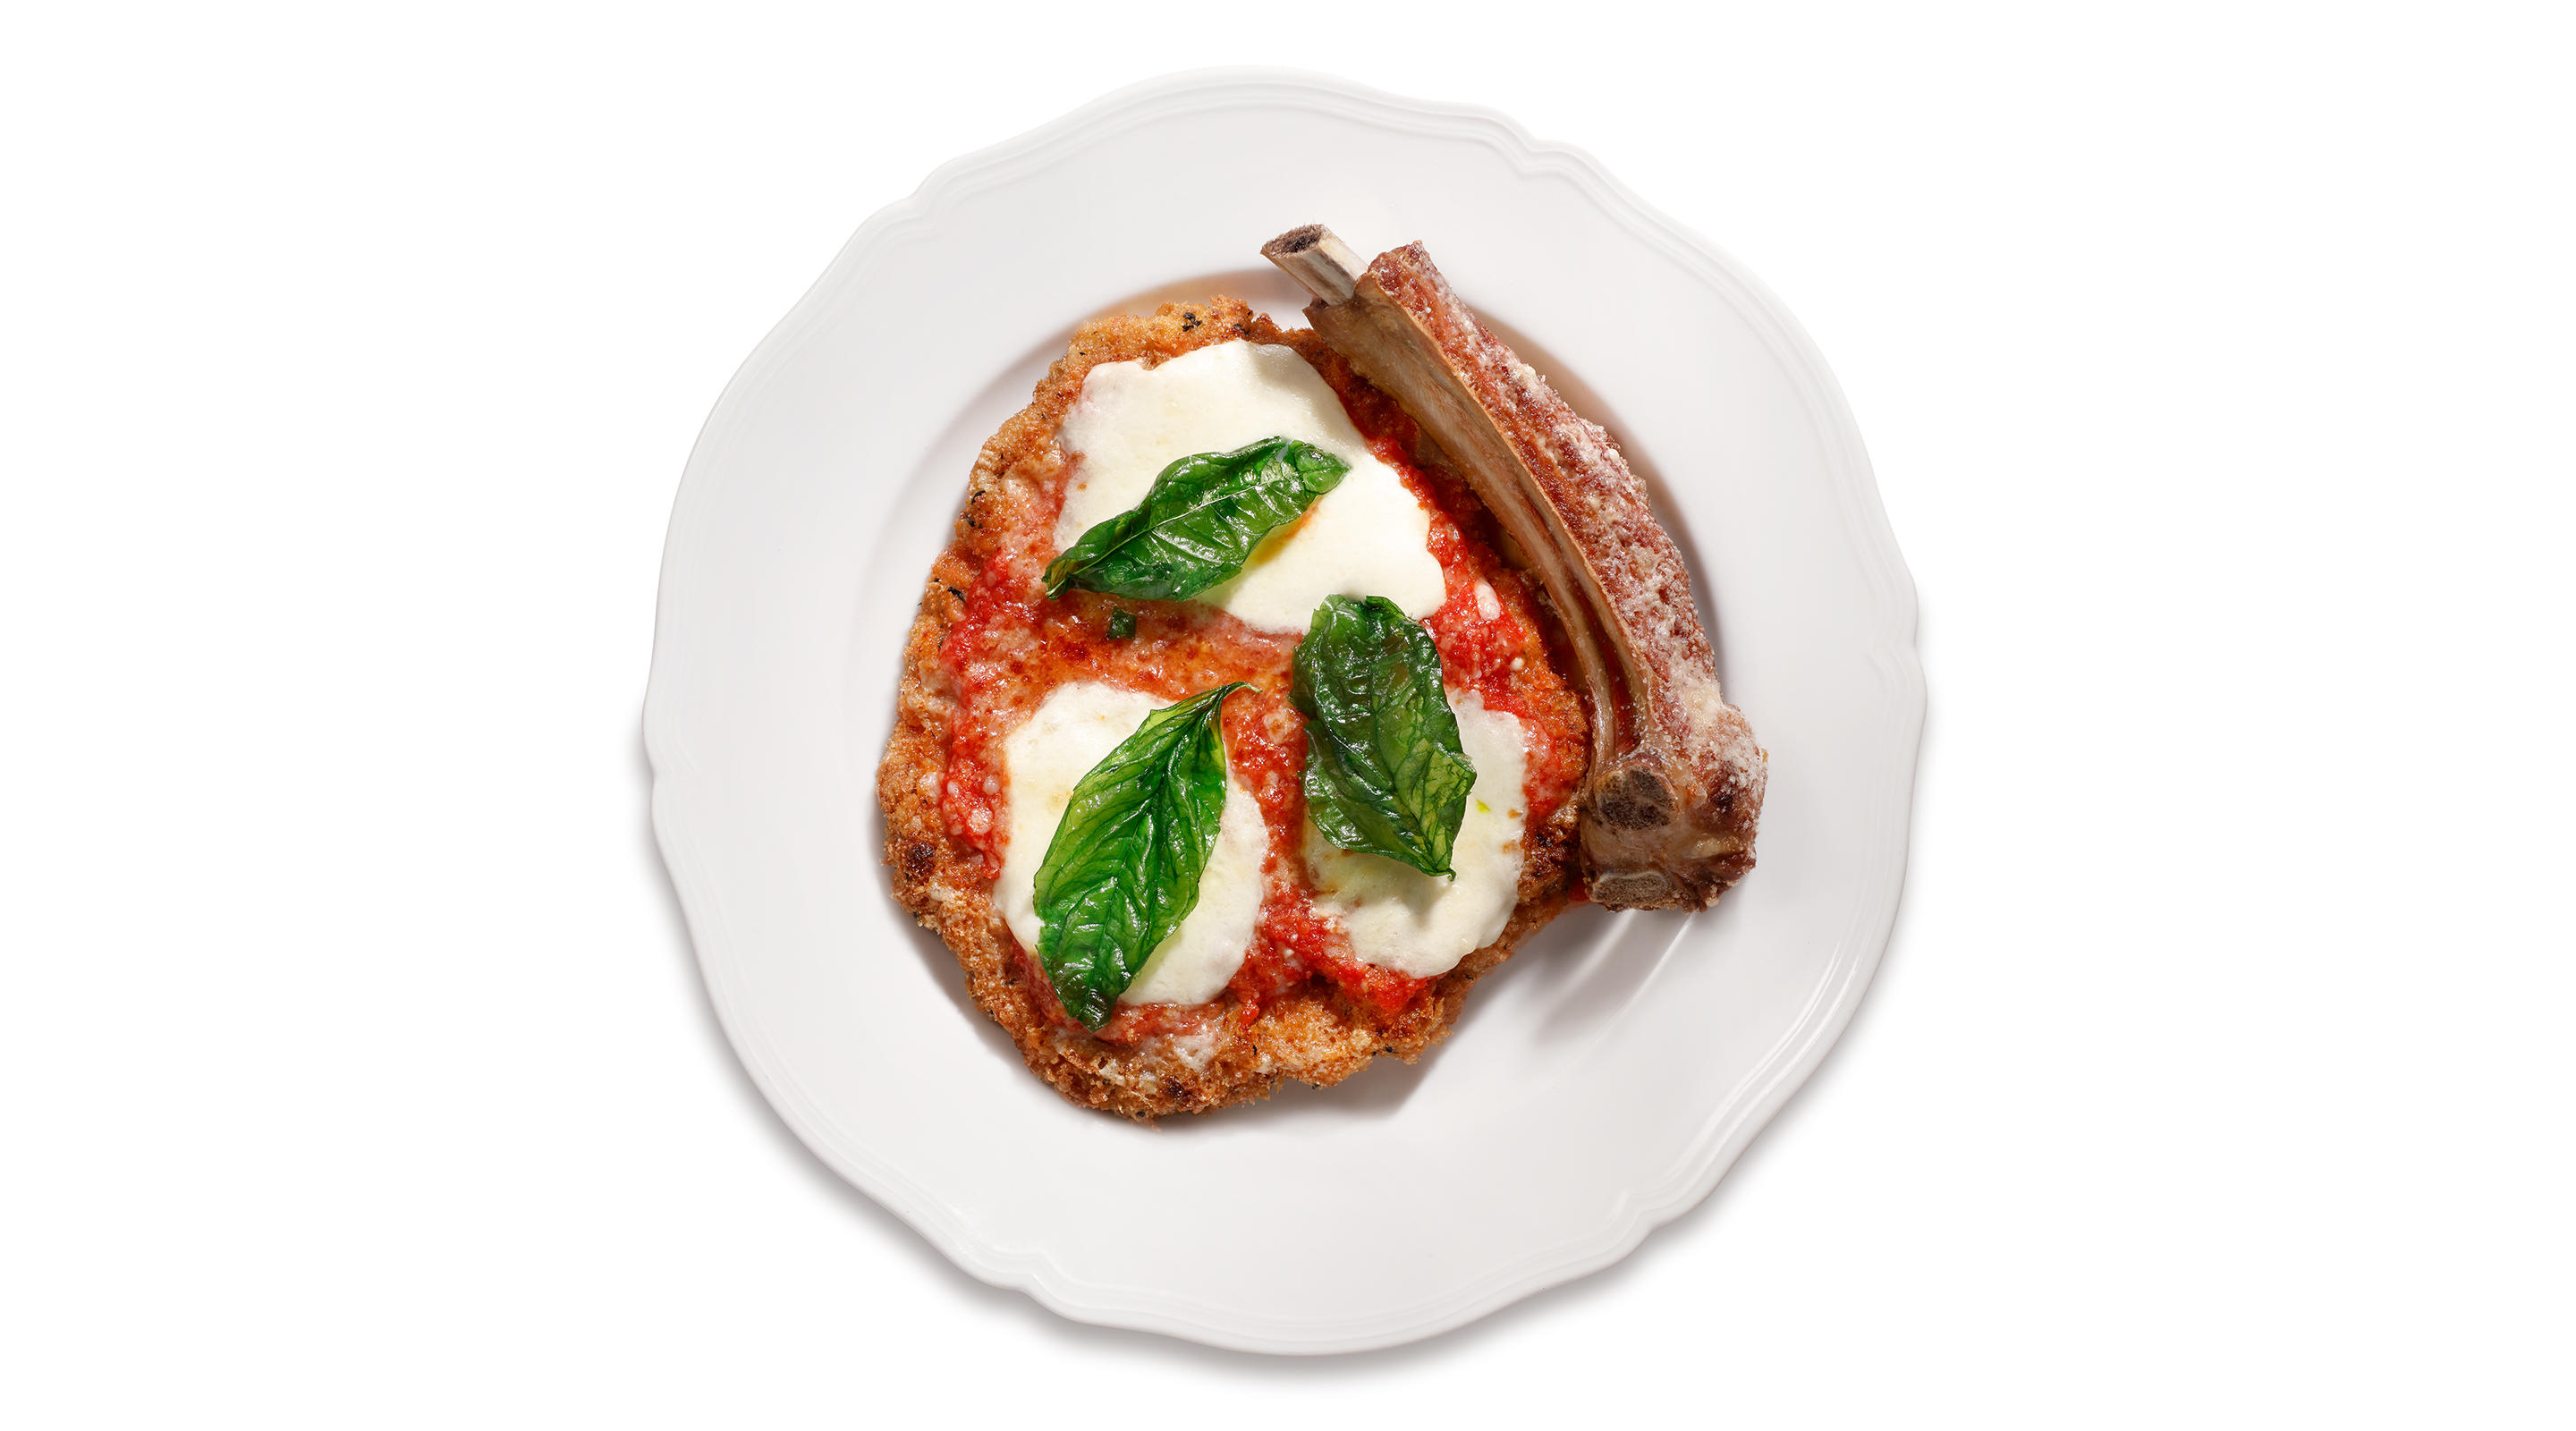 Experience Carbone from home with our iconic Veal Parm.